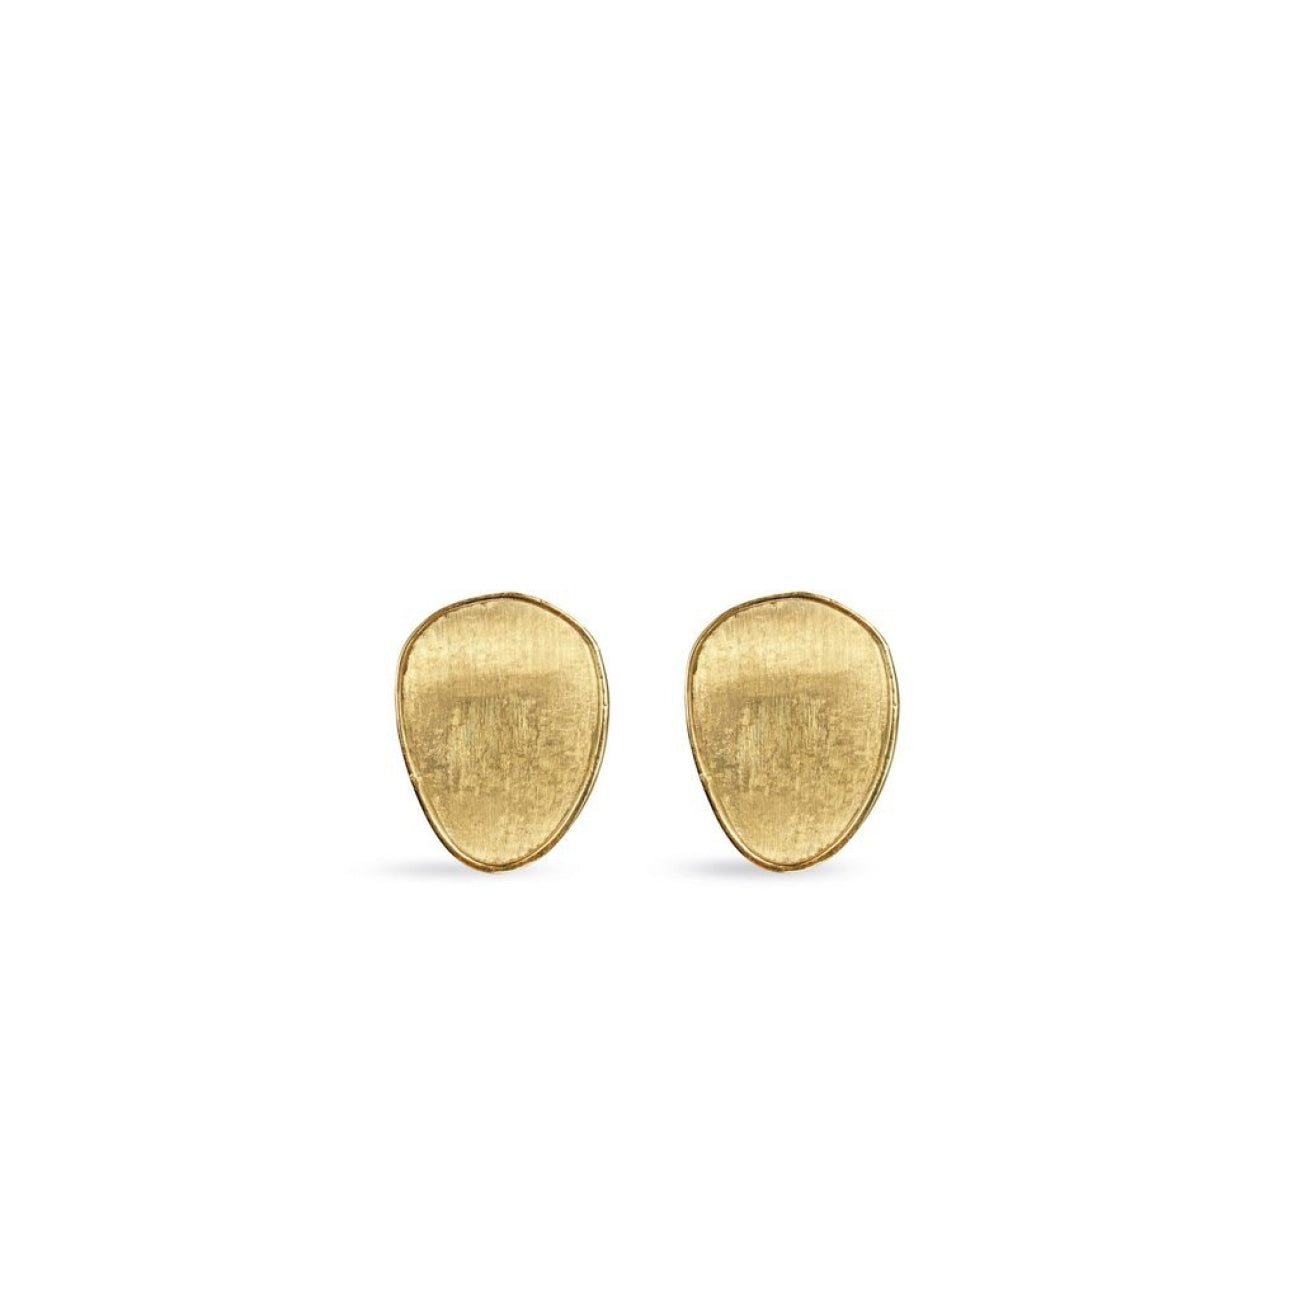 Marco Bicego Jewelry - 18k Yellow Flat Gold Medium Stud Earrings | Manfredi Jewels